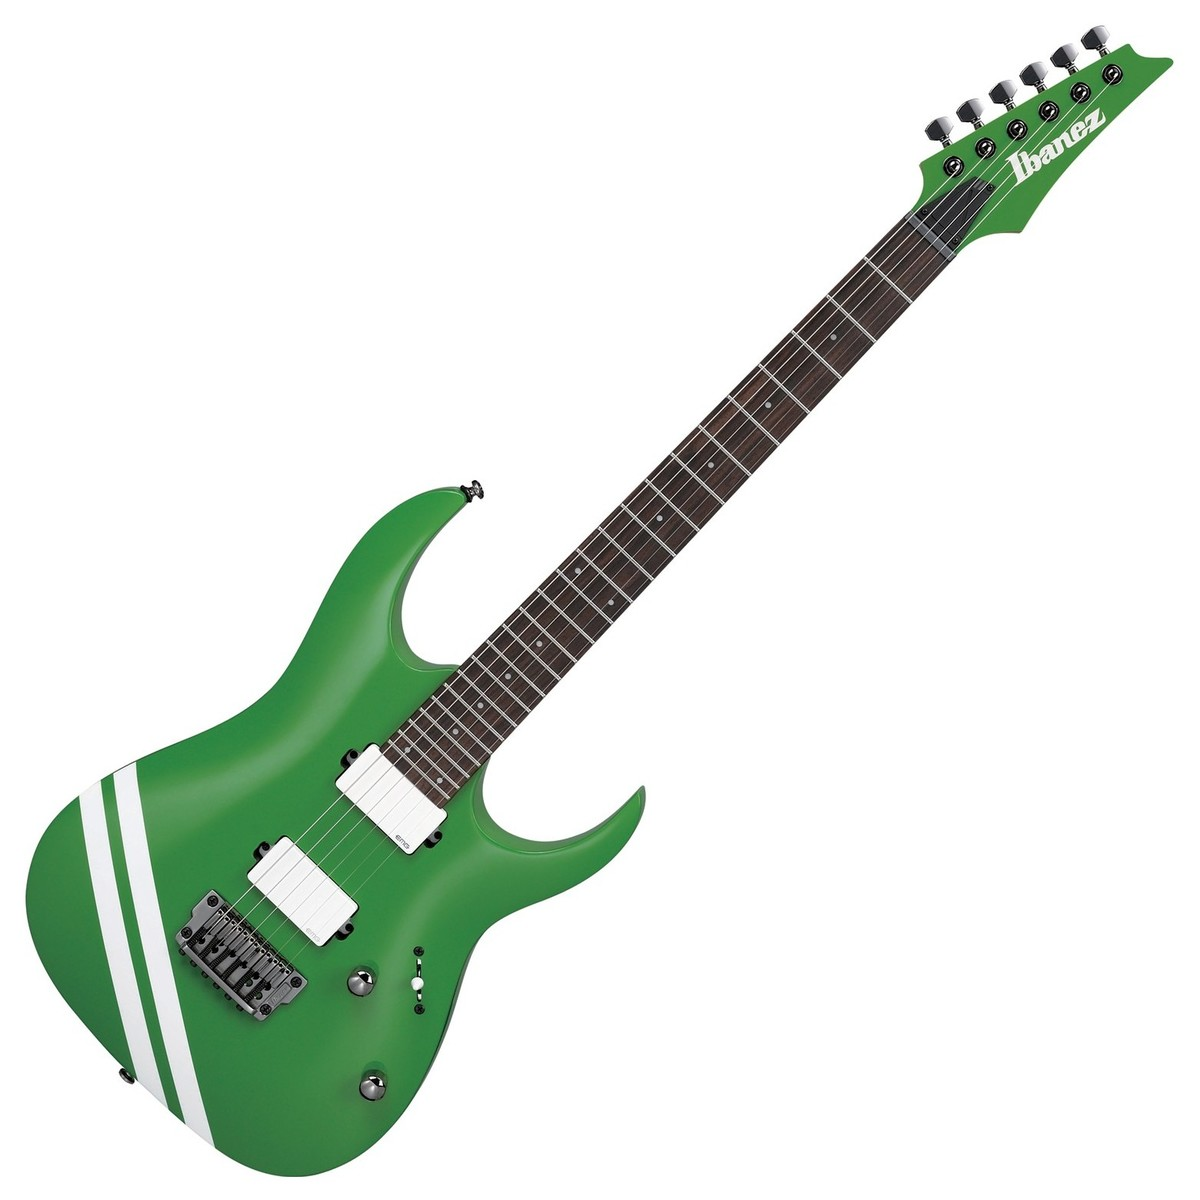 ibanez jbbm20 jb brubaker 2018 green at gear4music. Black Bedroom Furniture Sets. Home Design Ideas